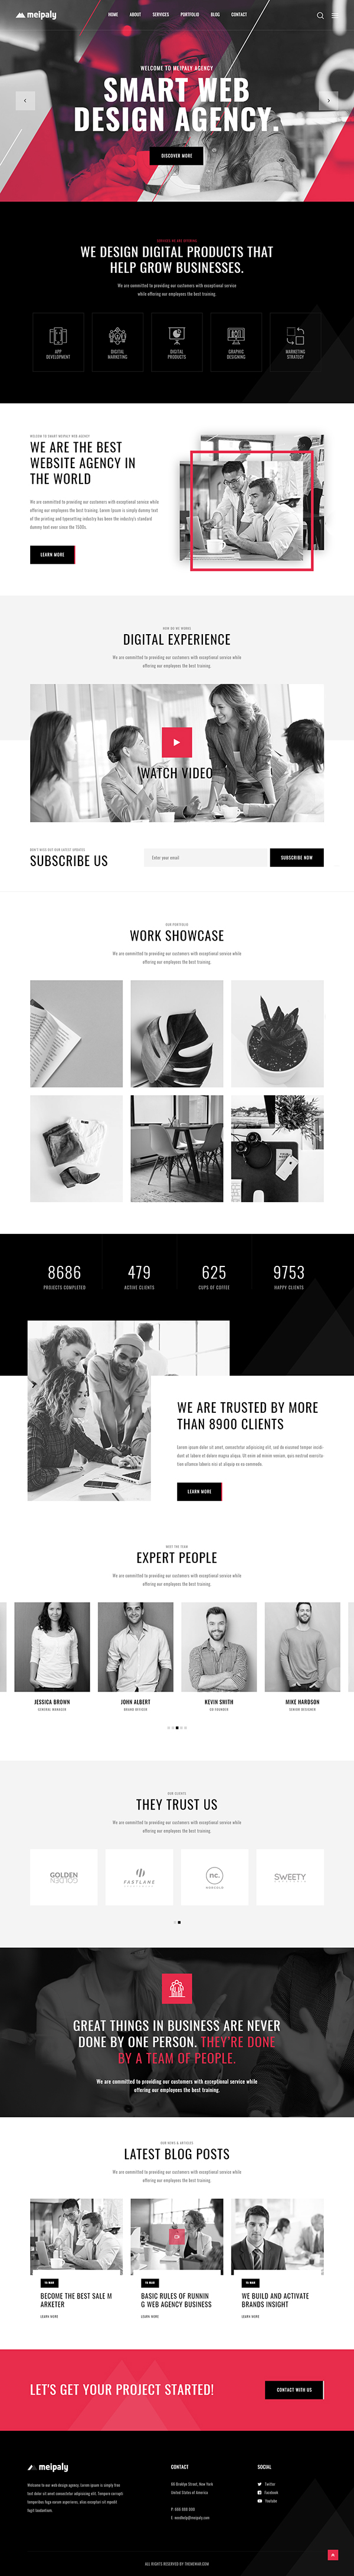 Meipaly - Digital Services Agency WordPress Theme